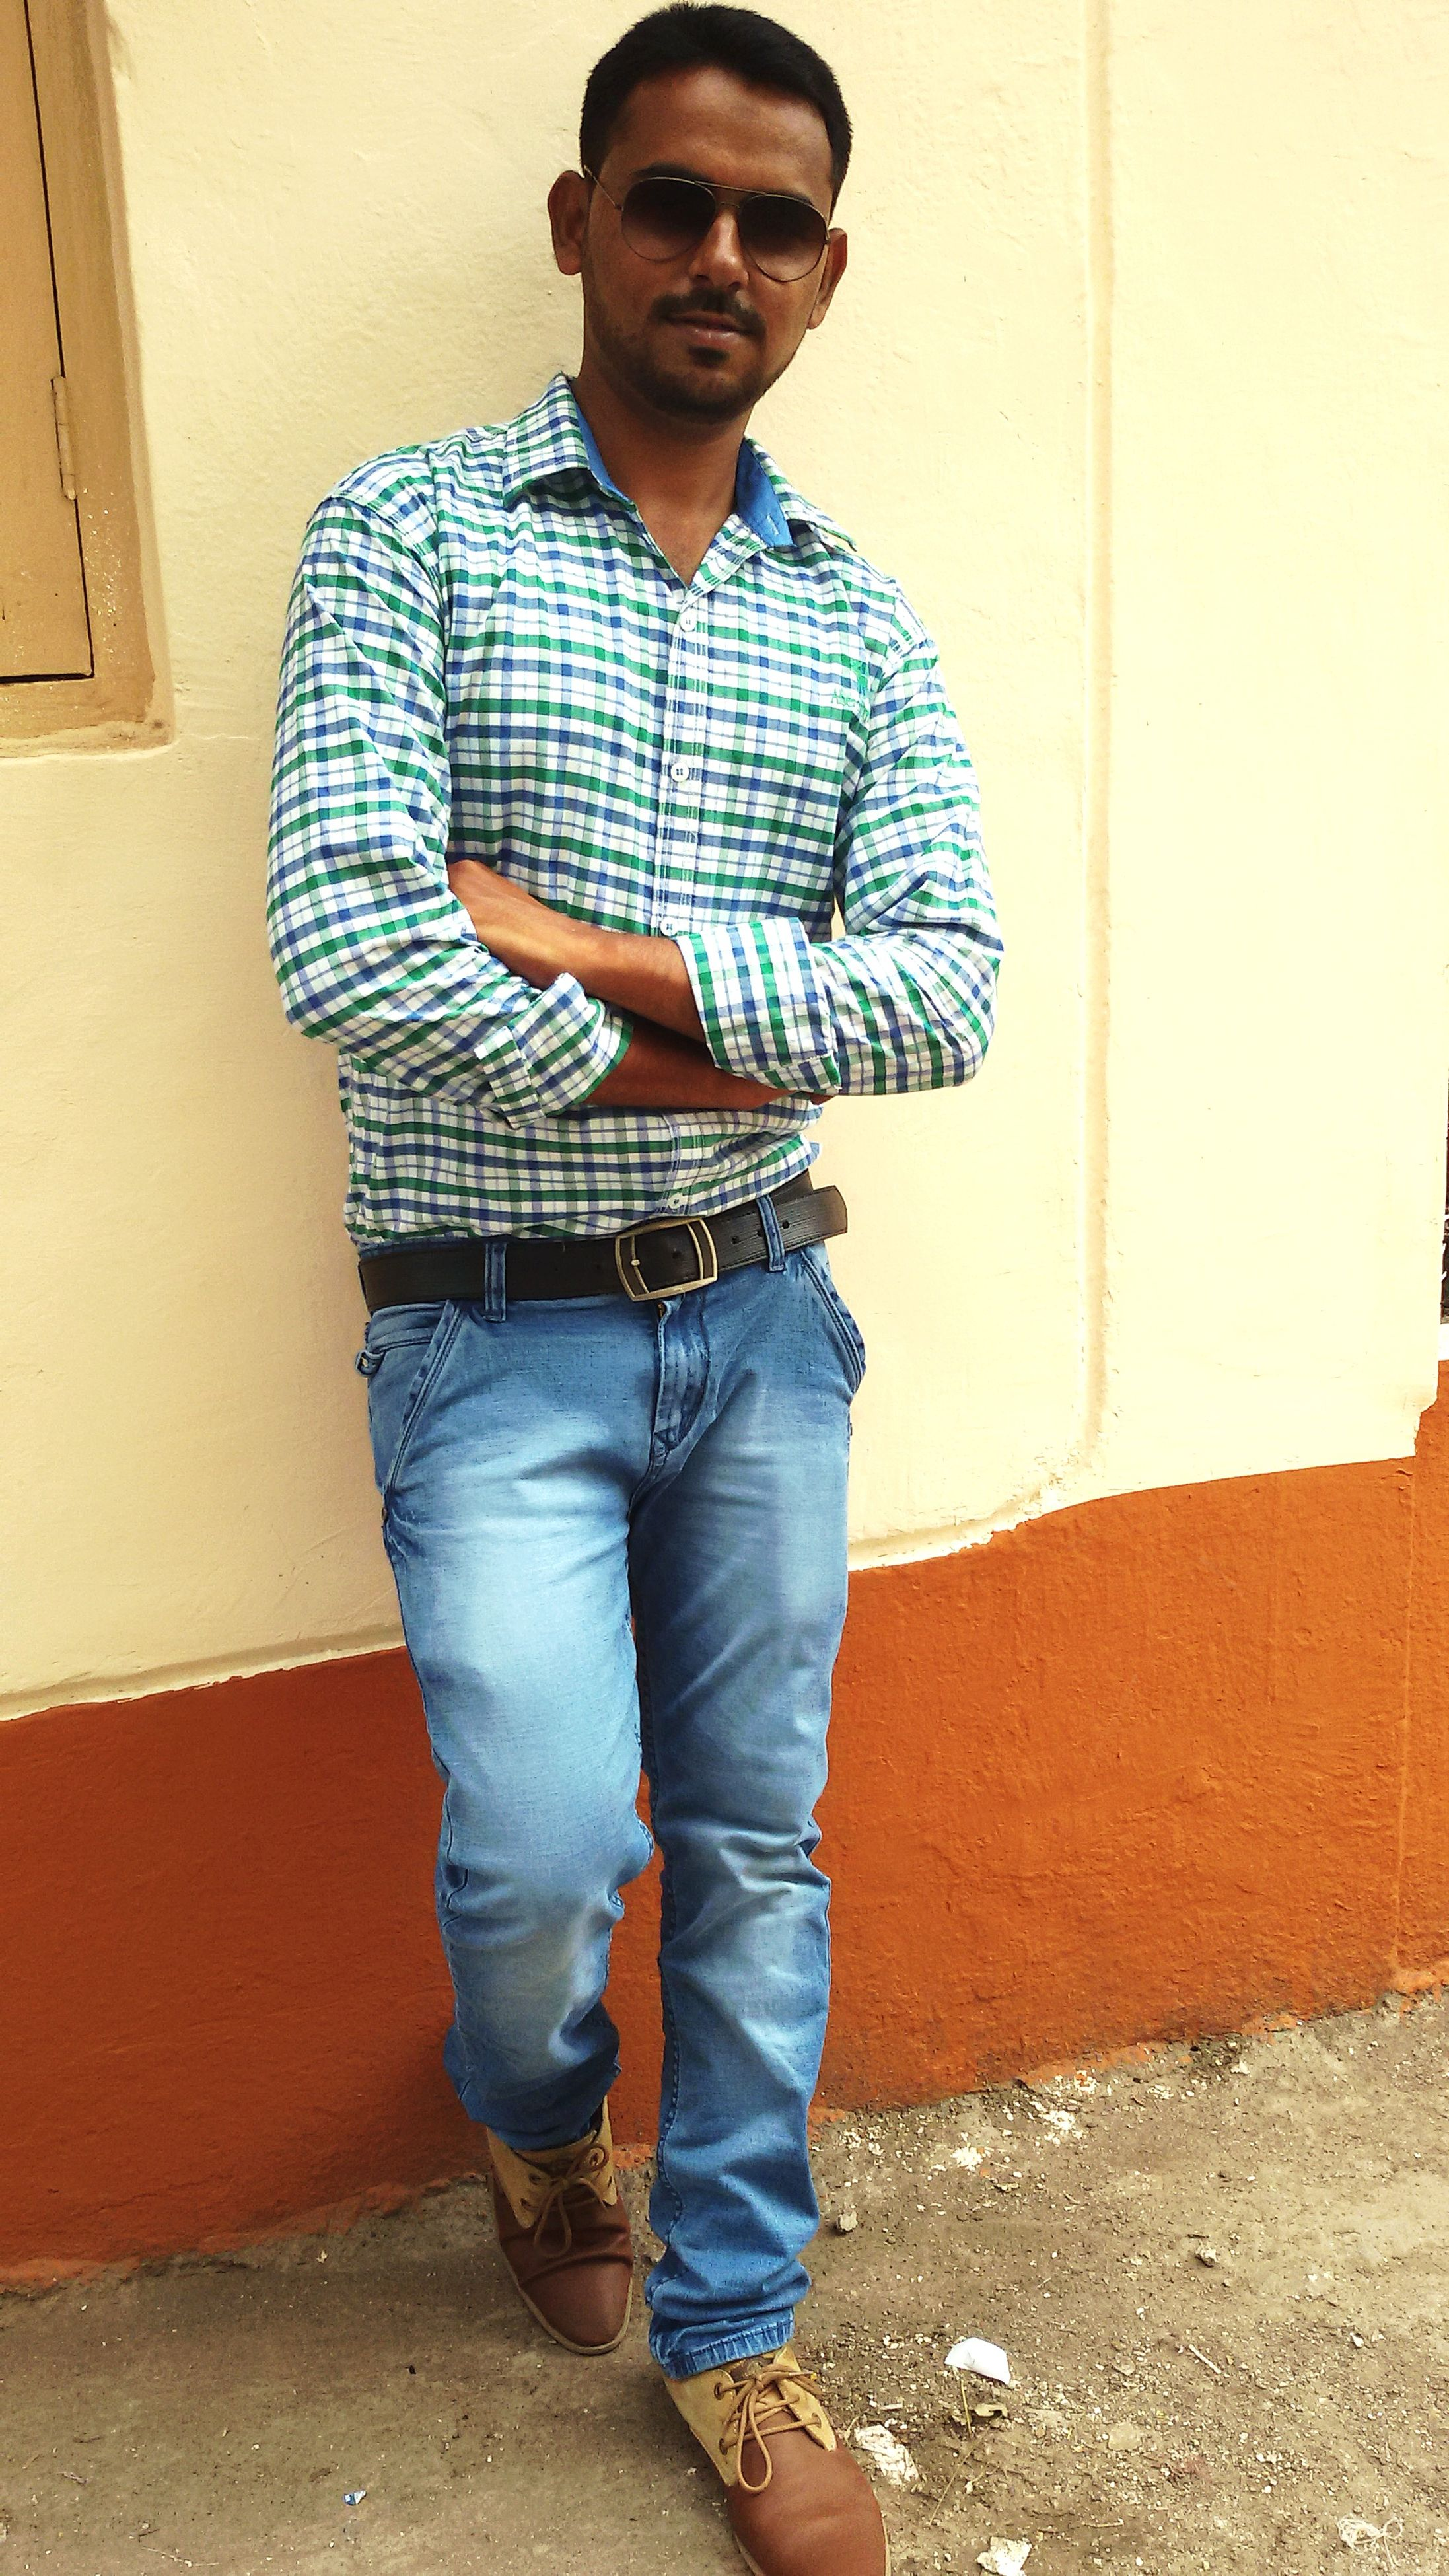 casual clothing, person, young adult, front view, standing, lifestyles, looking at camera, portrait, built structure, full length, young men, architecture, wall - building feature, leisure activity, building exterior, three quarter length, hands in pockets